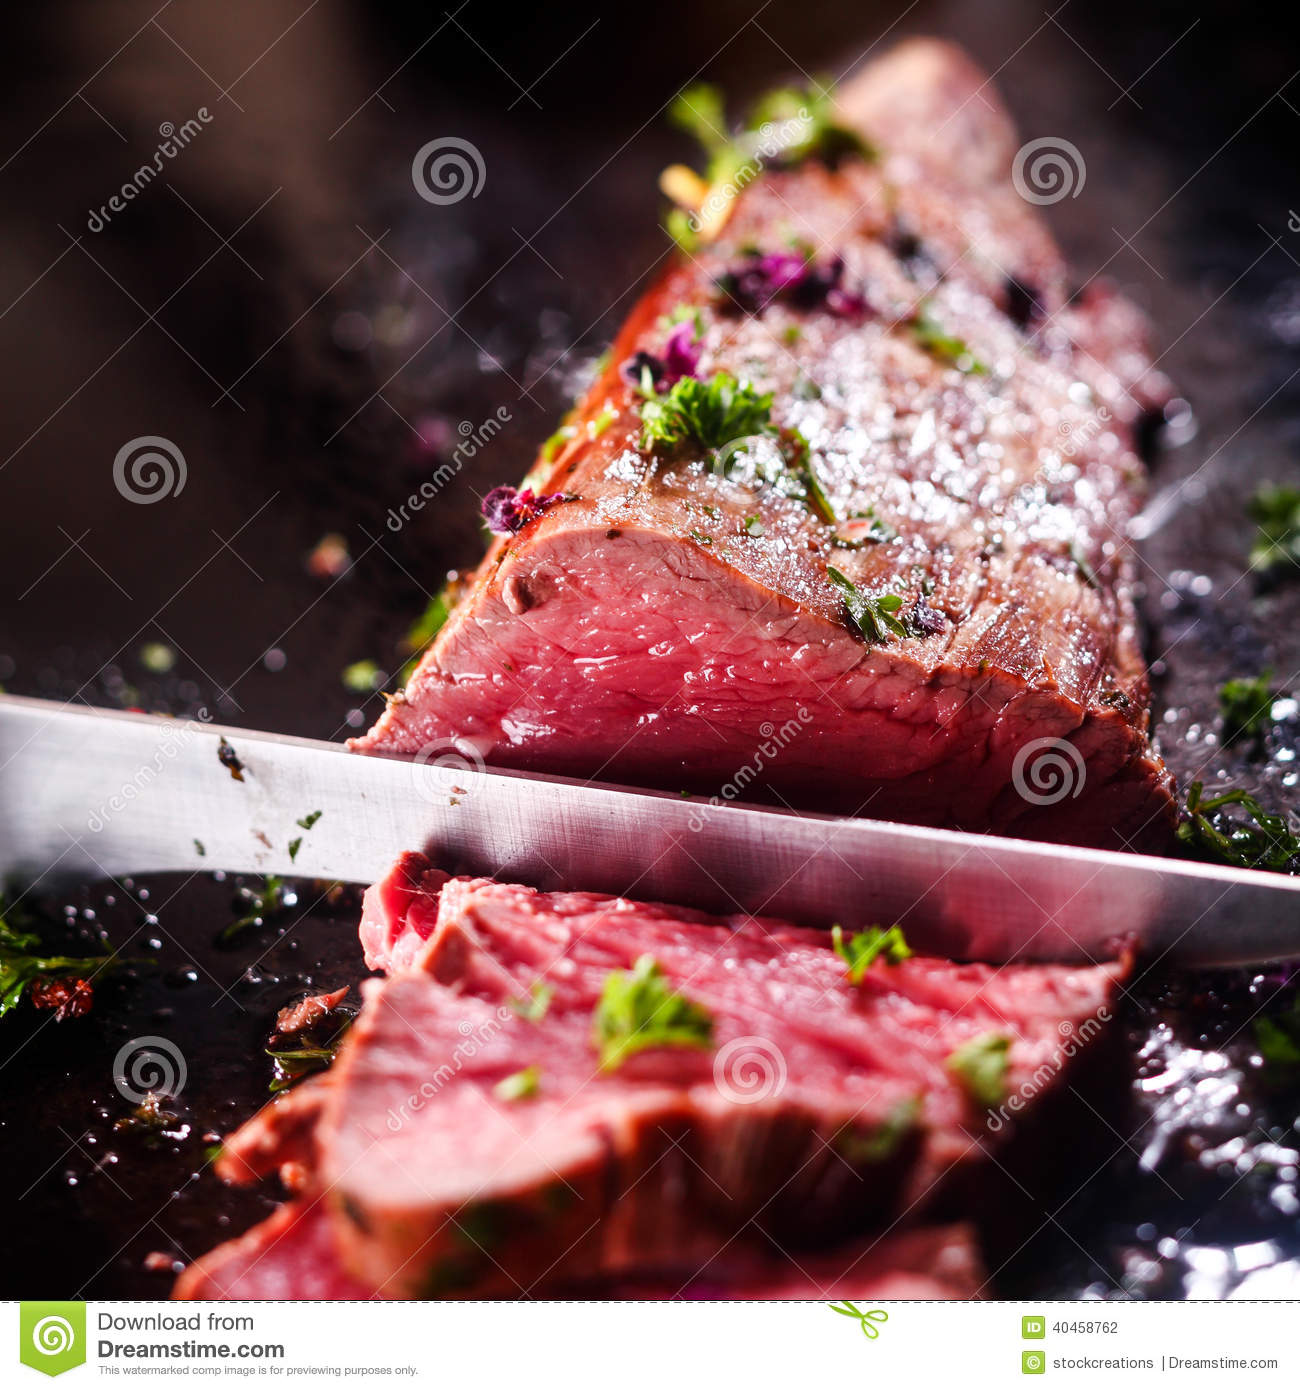 Carving a portion of rare roast beef